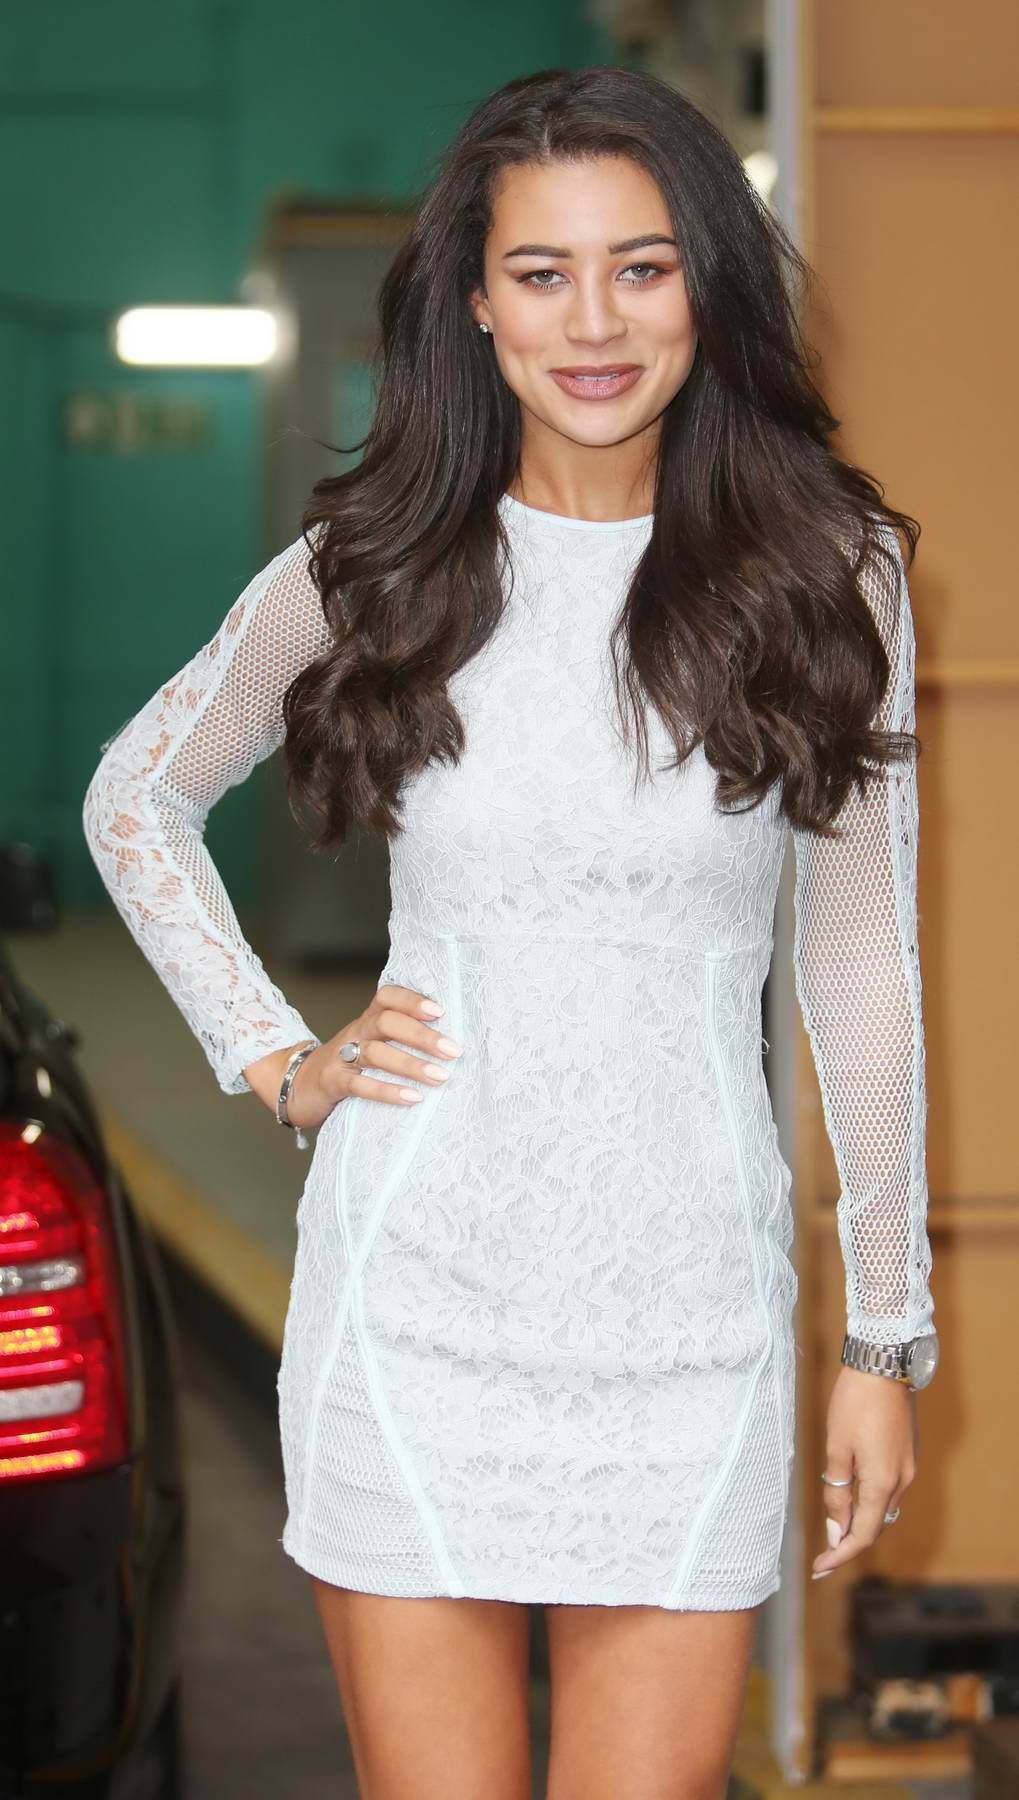 Montana Brown spotted at the ITV Studios in London